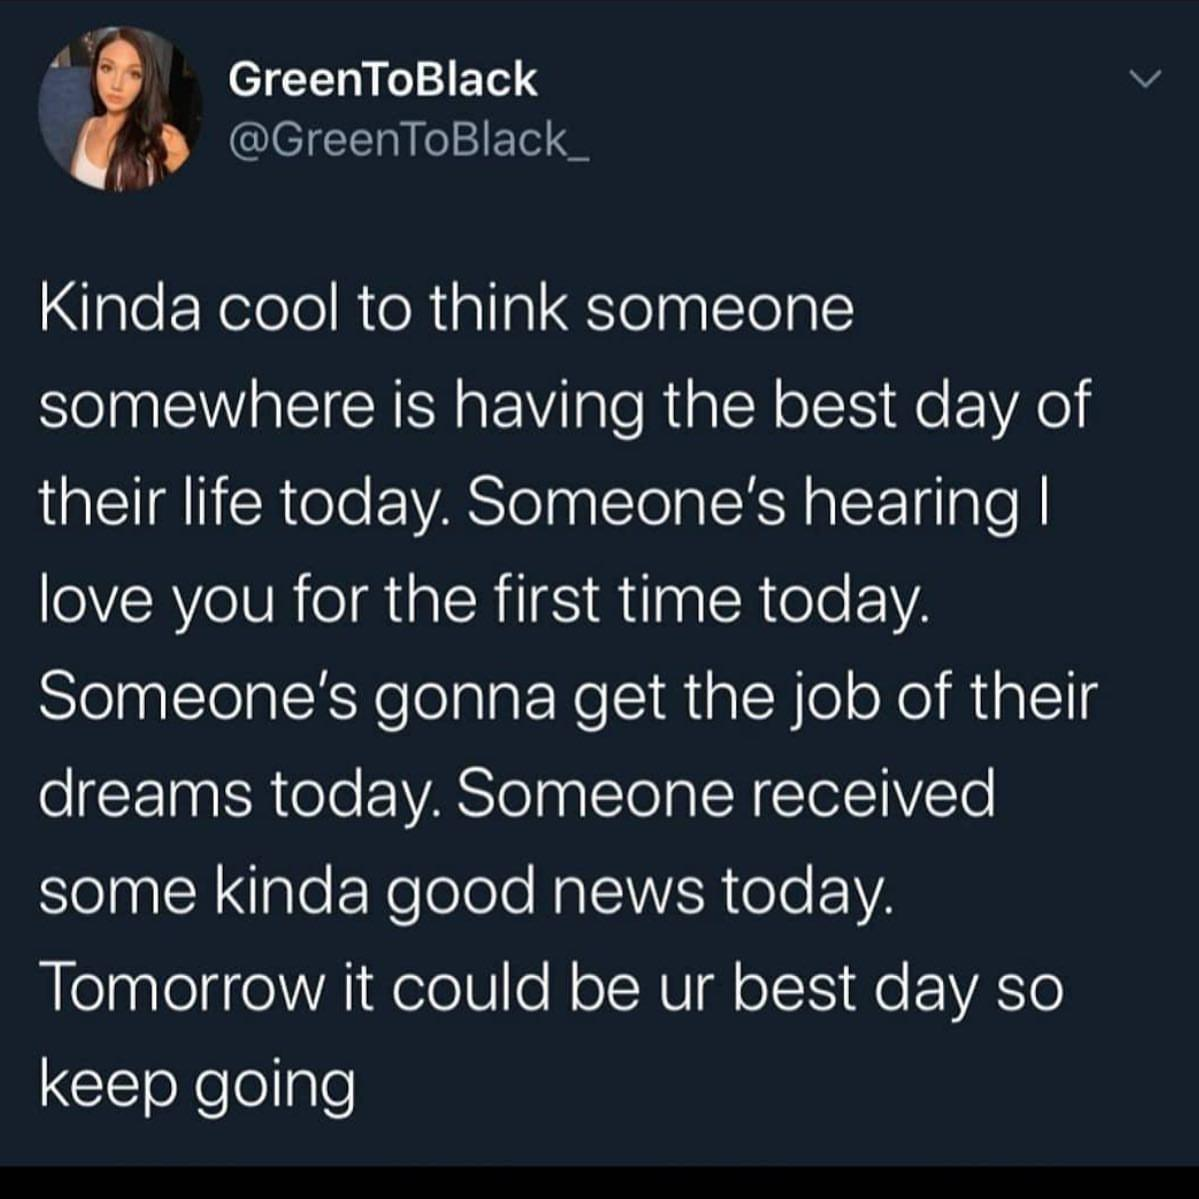 [Image] Your day is gonna come, keep going